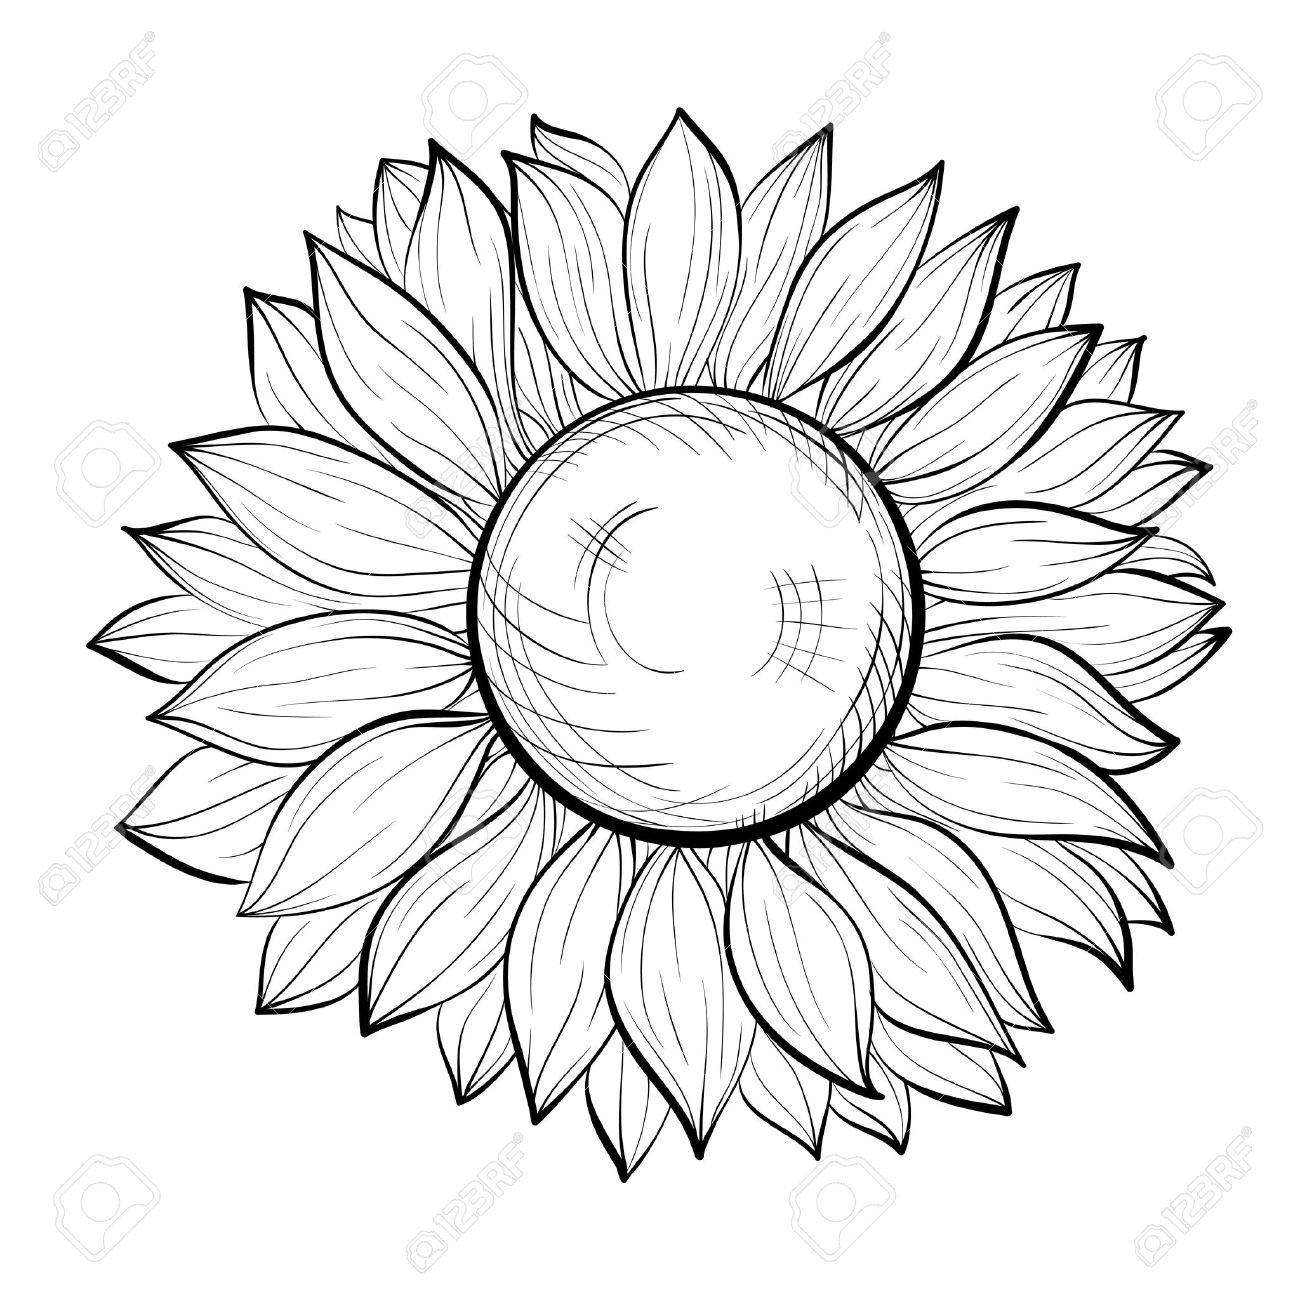 1300x1300 Black And White Sunflower Drawing Sunflower Outline Drawing